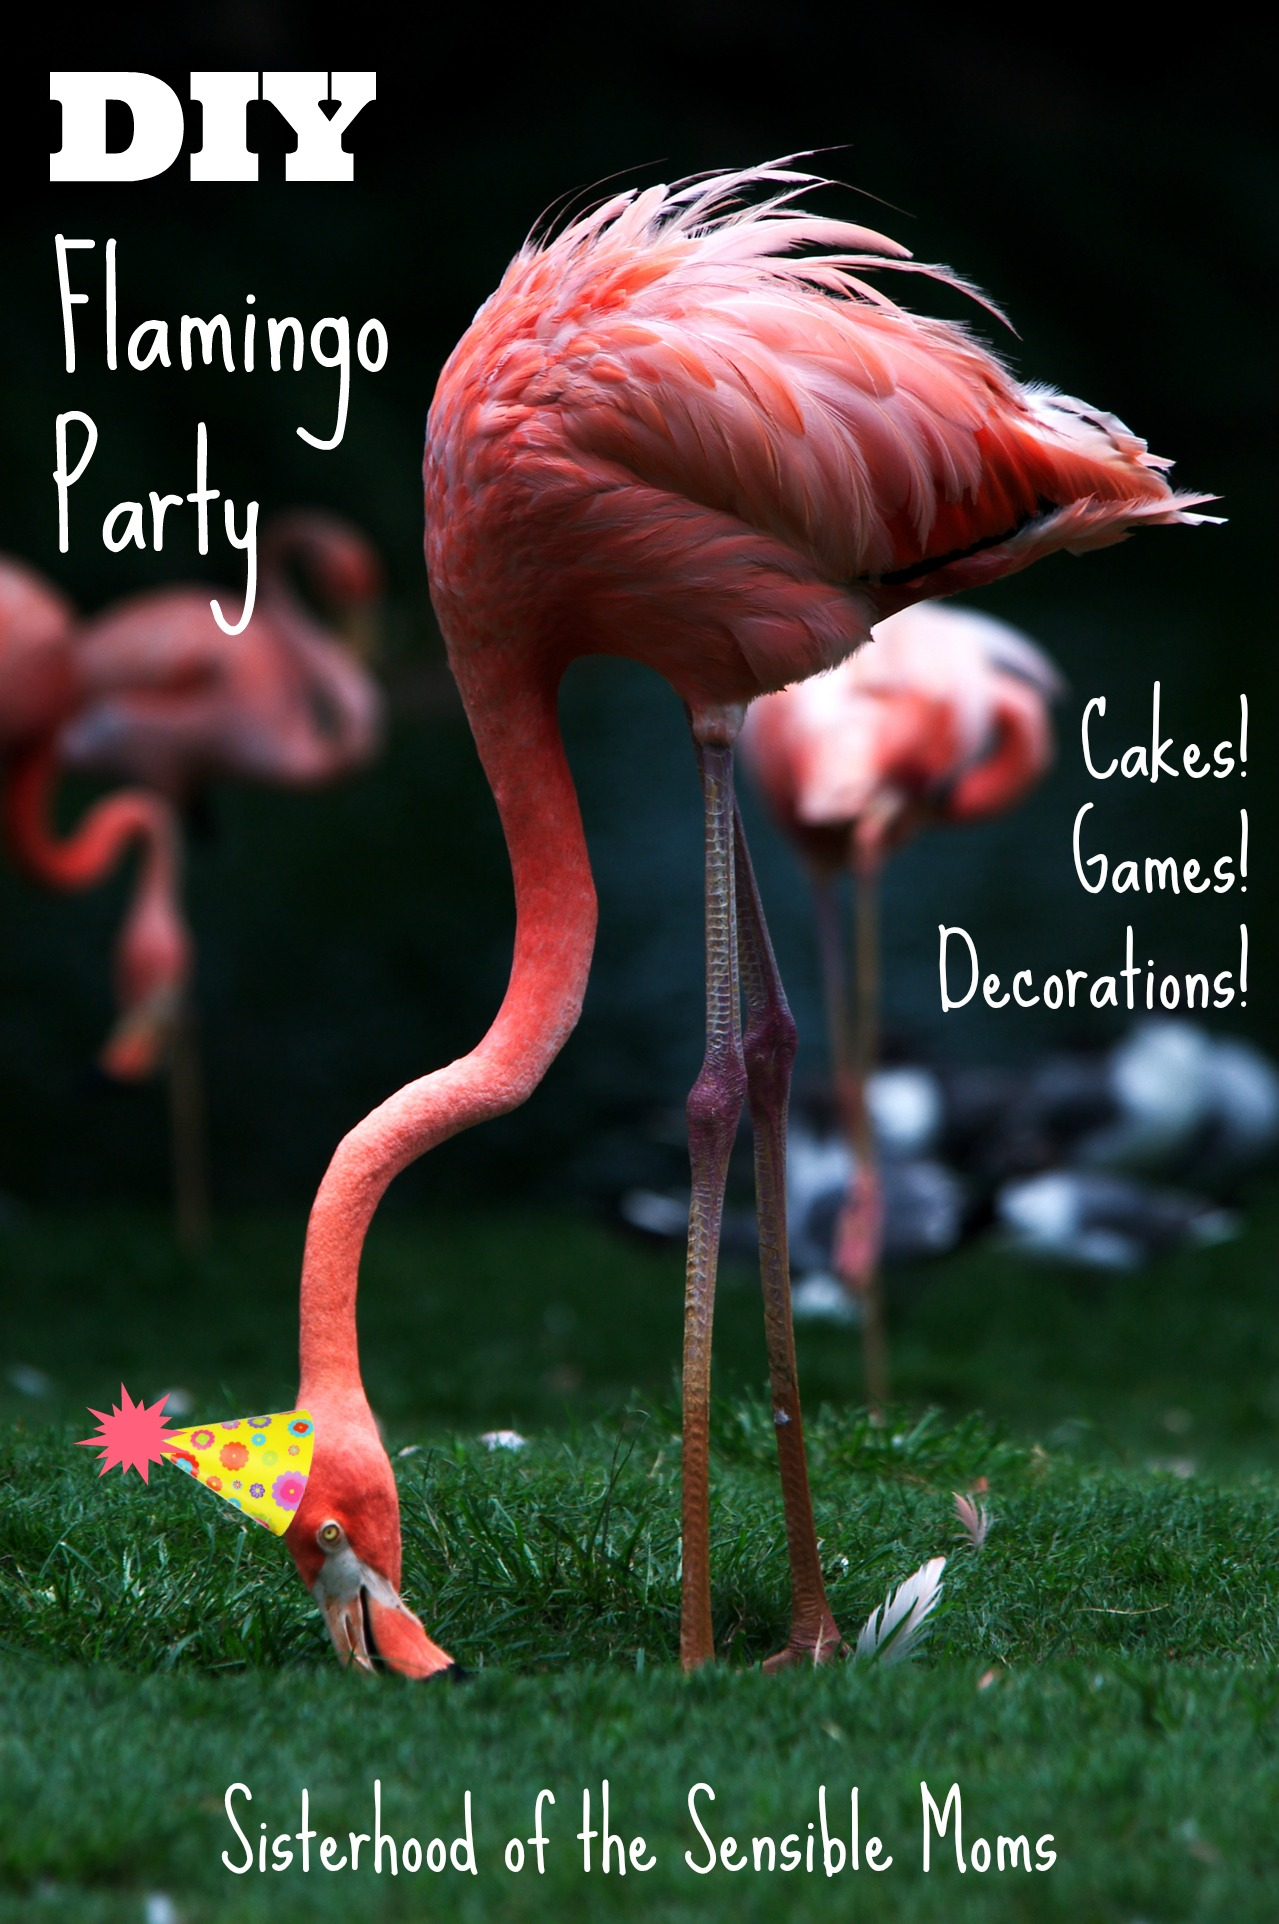 A flamingo party theme works for birthdays, showers, pool parties, and barbecues! Easy, DIY, and fun! Great cake decorating tips too! | Sisterhood of the Sensible Moms!